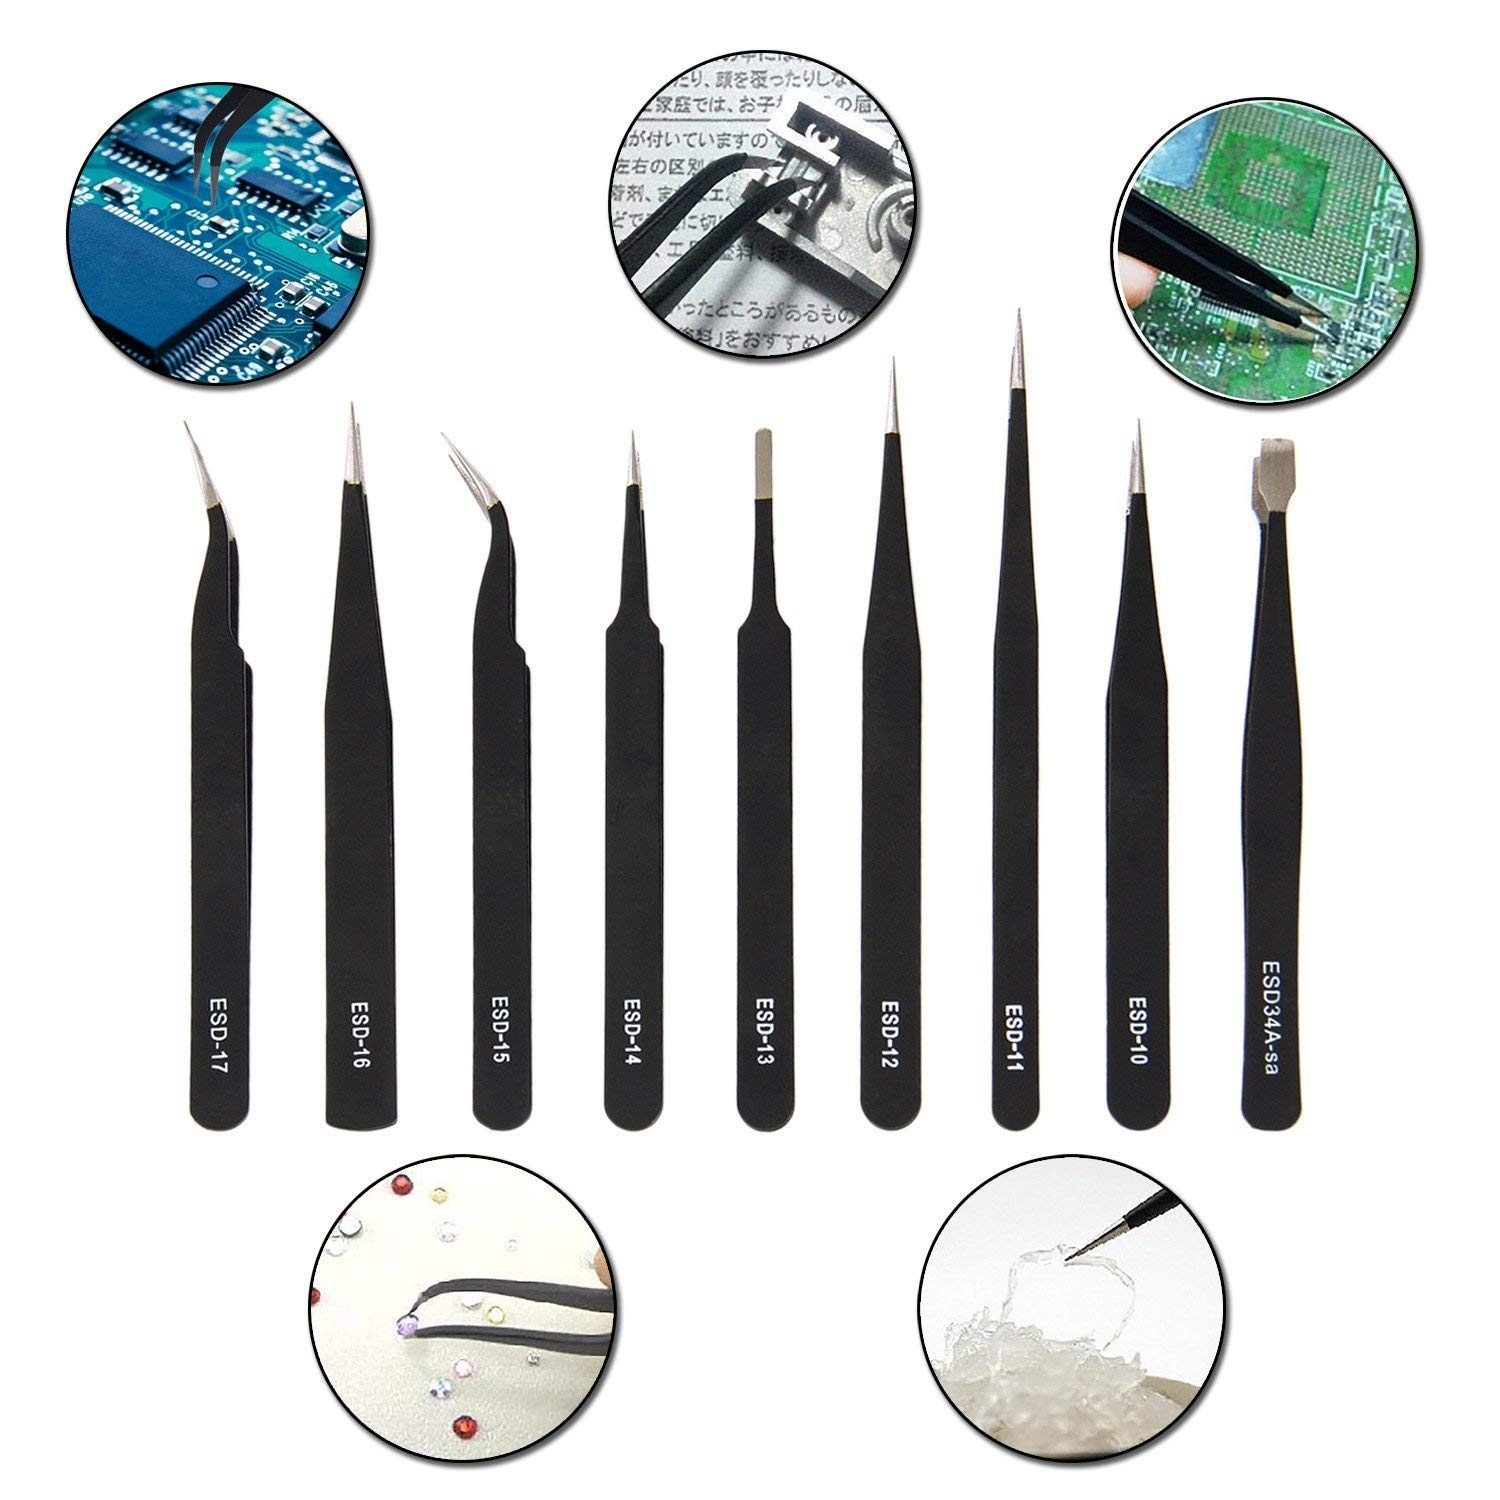 ESD Tweezers Tools Kit, 9 Pieces Precision Anti-Static Non-Magnetic Stainless Steel Tweezers with Storage Bag for Electronics, Jewelry-Making, Laboratory Work, Hobbies and Detailed Work